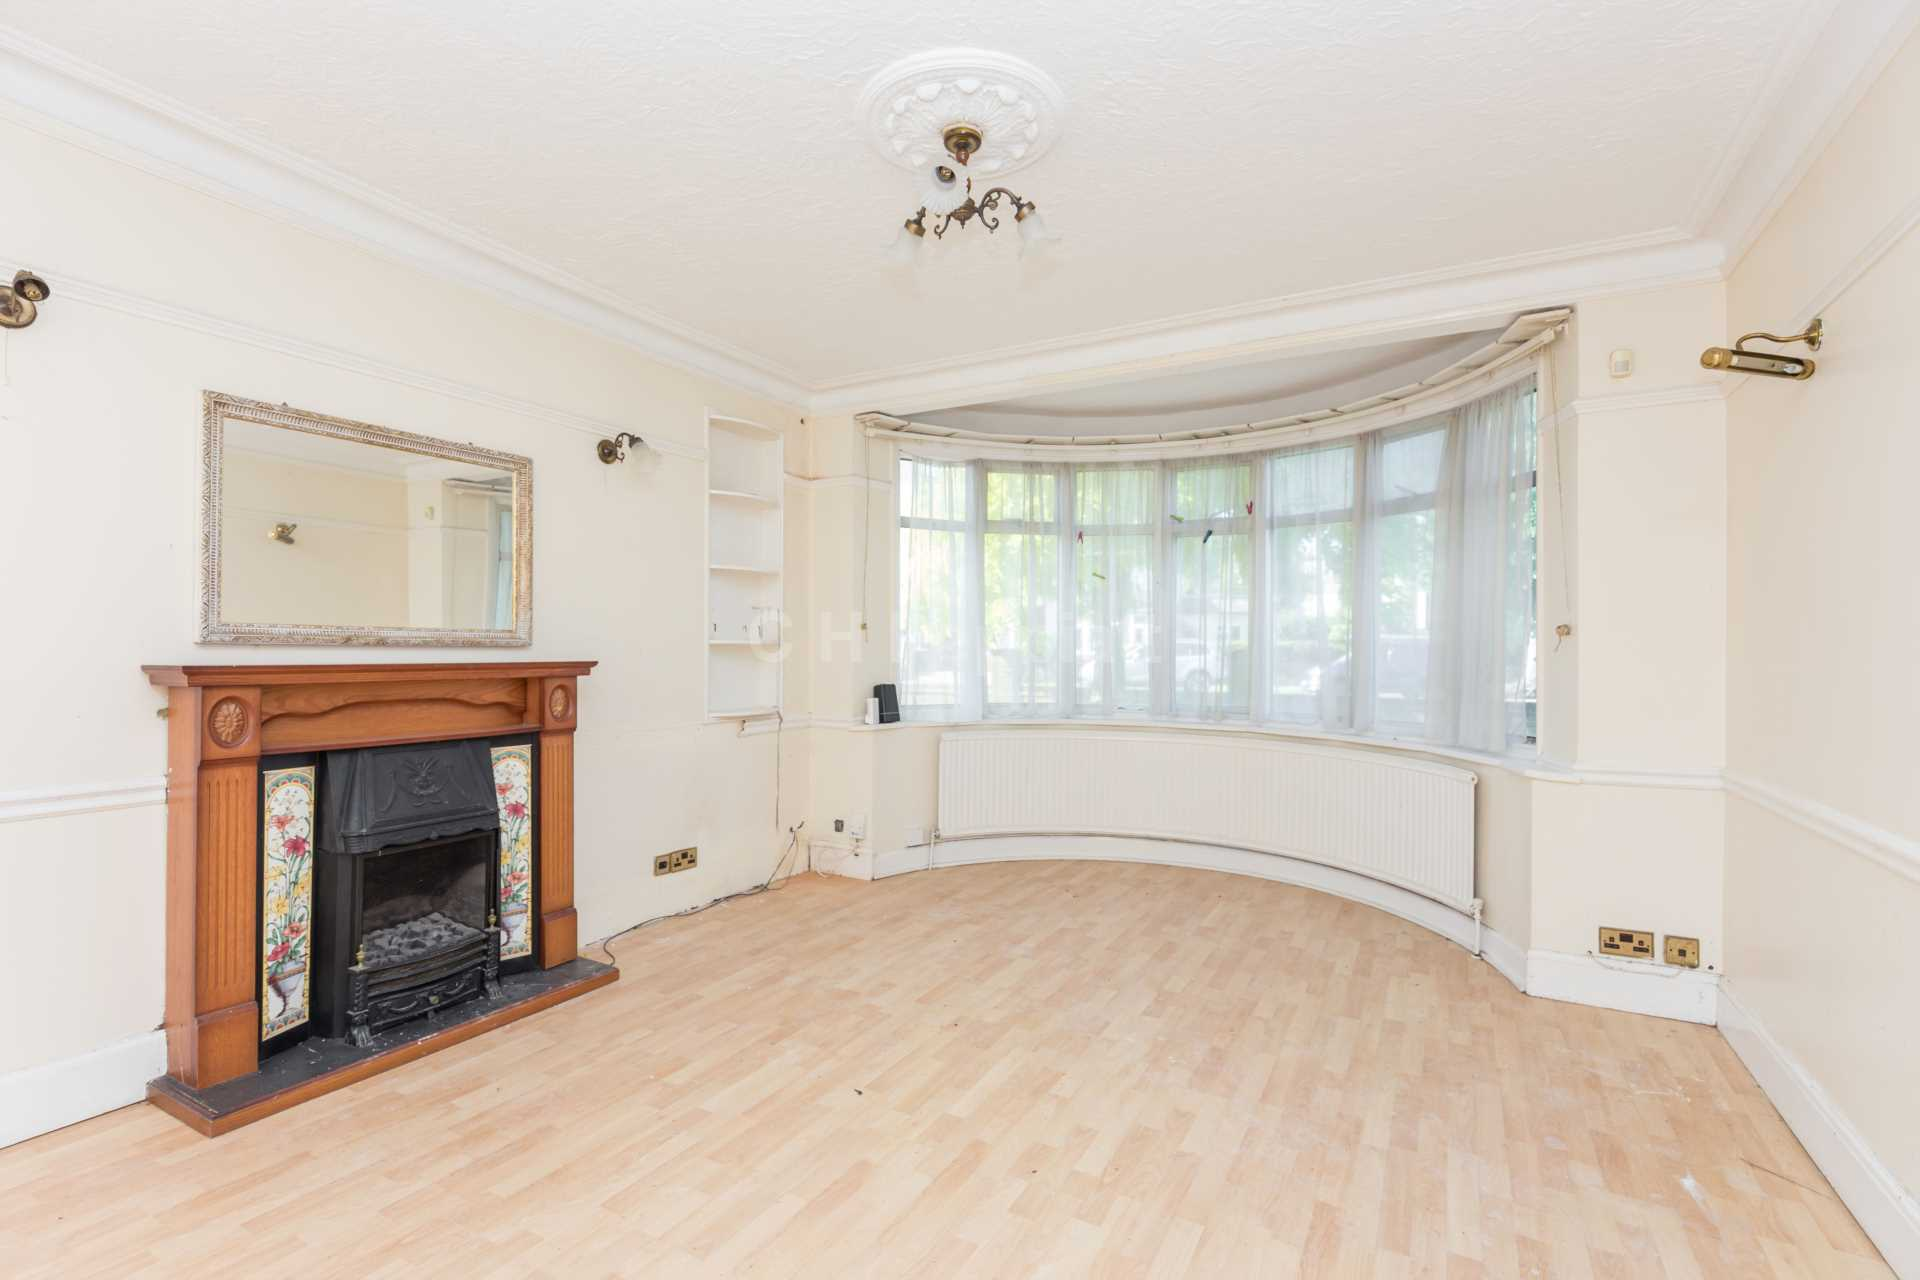 Halstead Road, Winchmore Hill, N21, Image 4